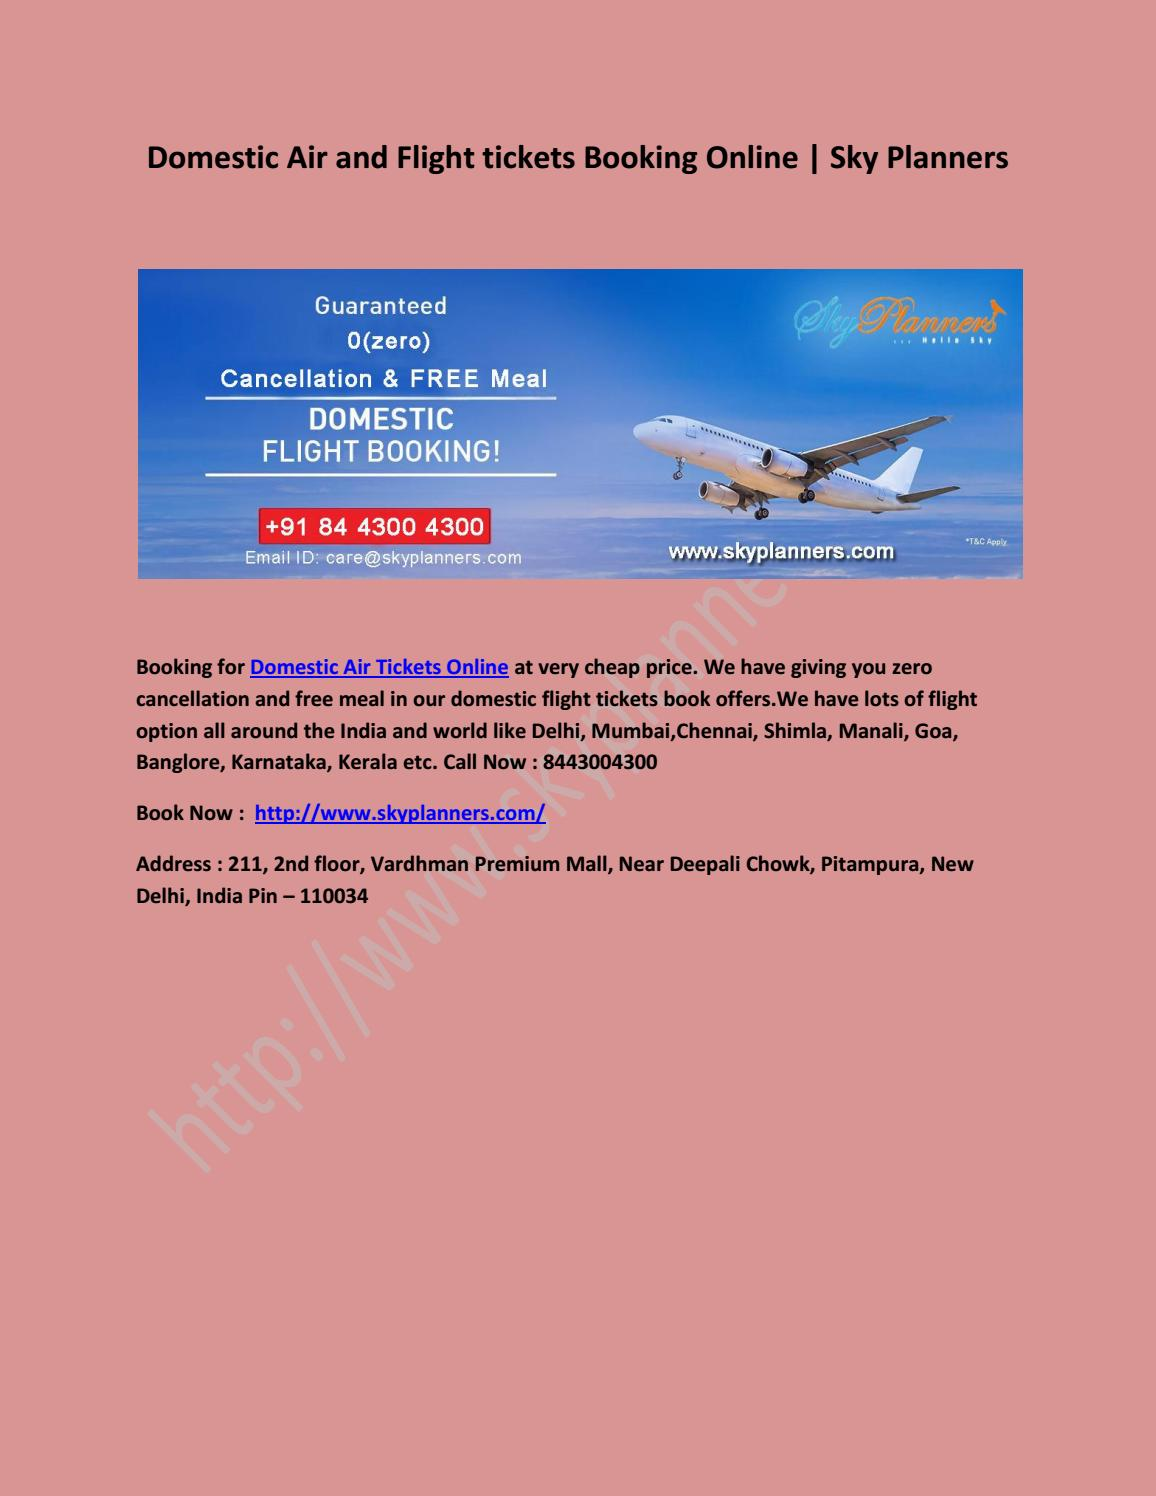 Domestic Air and Flight tickets Booking OnlineDomestic Air and Flight  tickets Booking Online by skyplanners - issuu